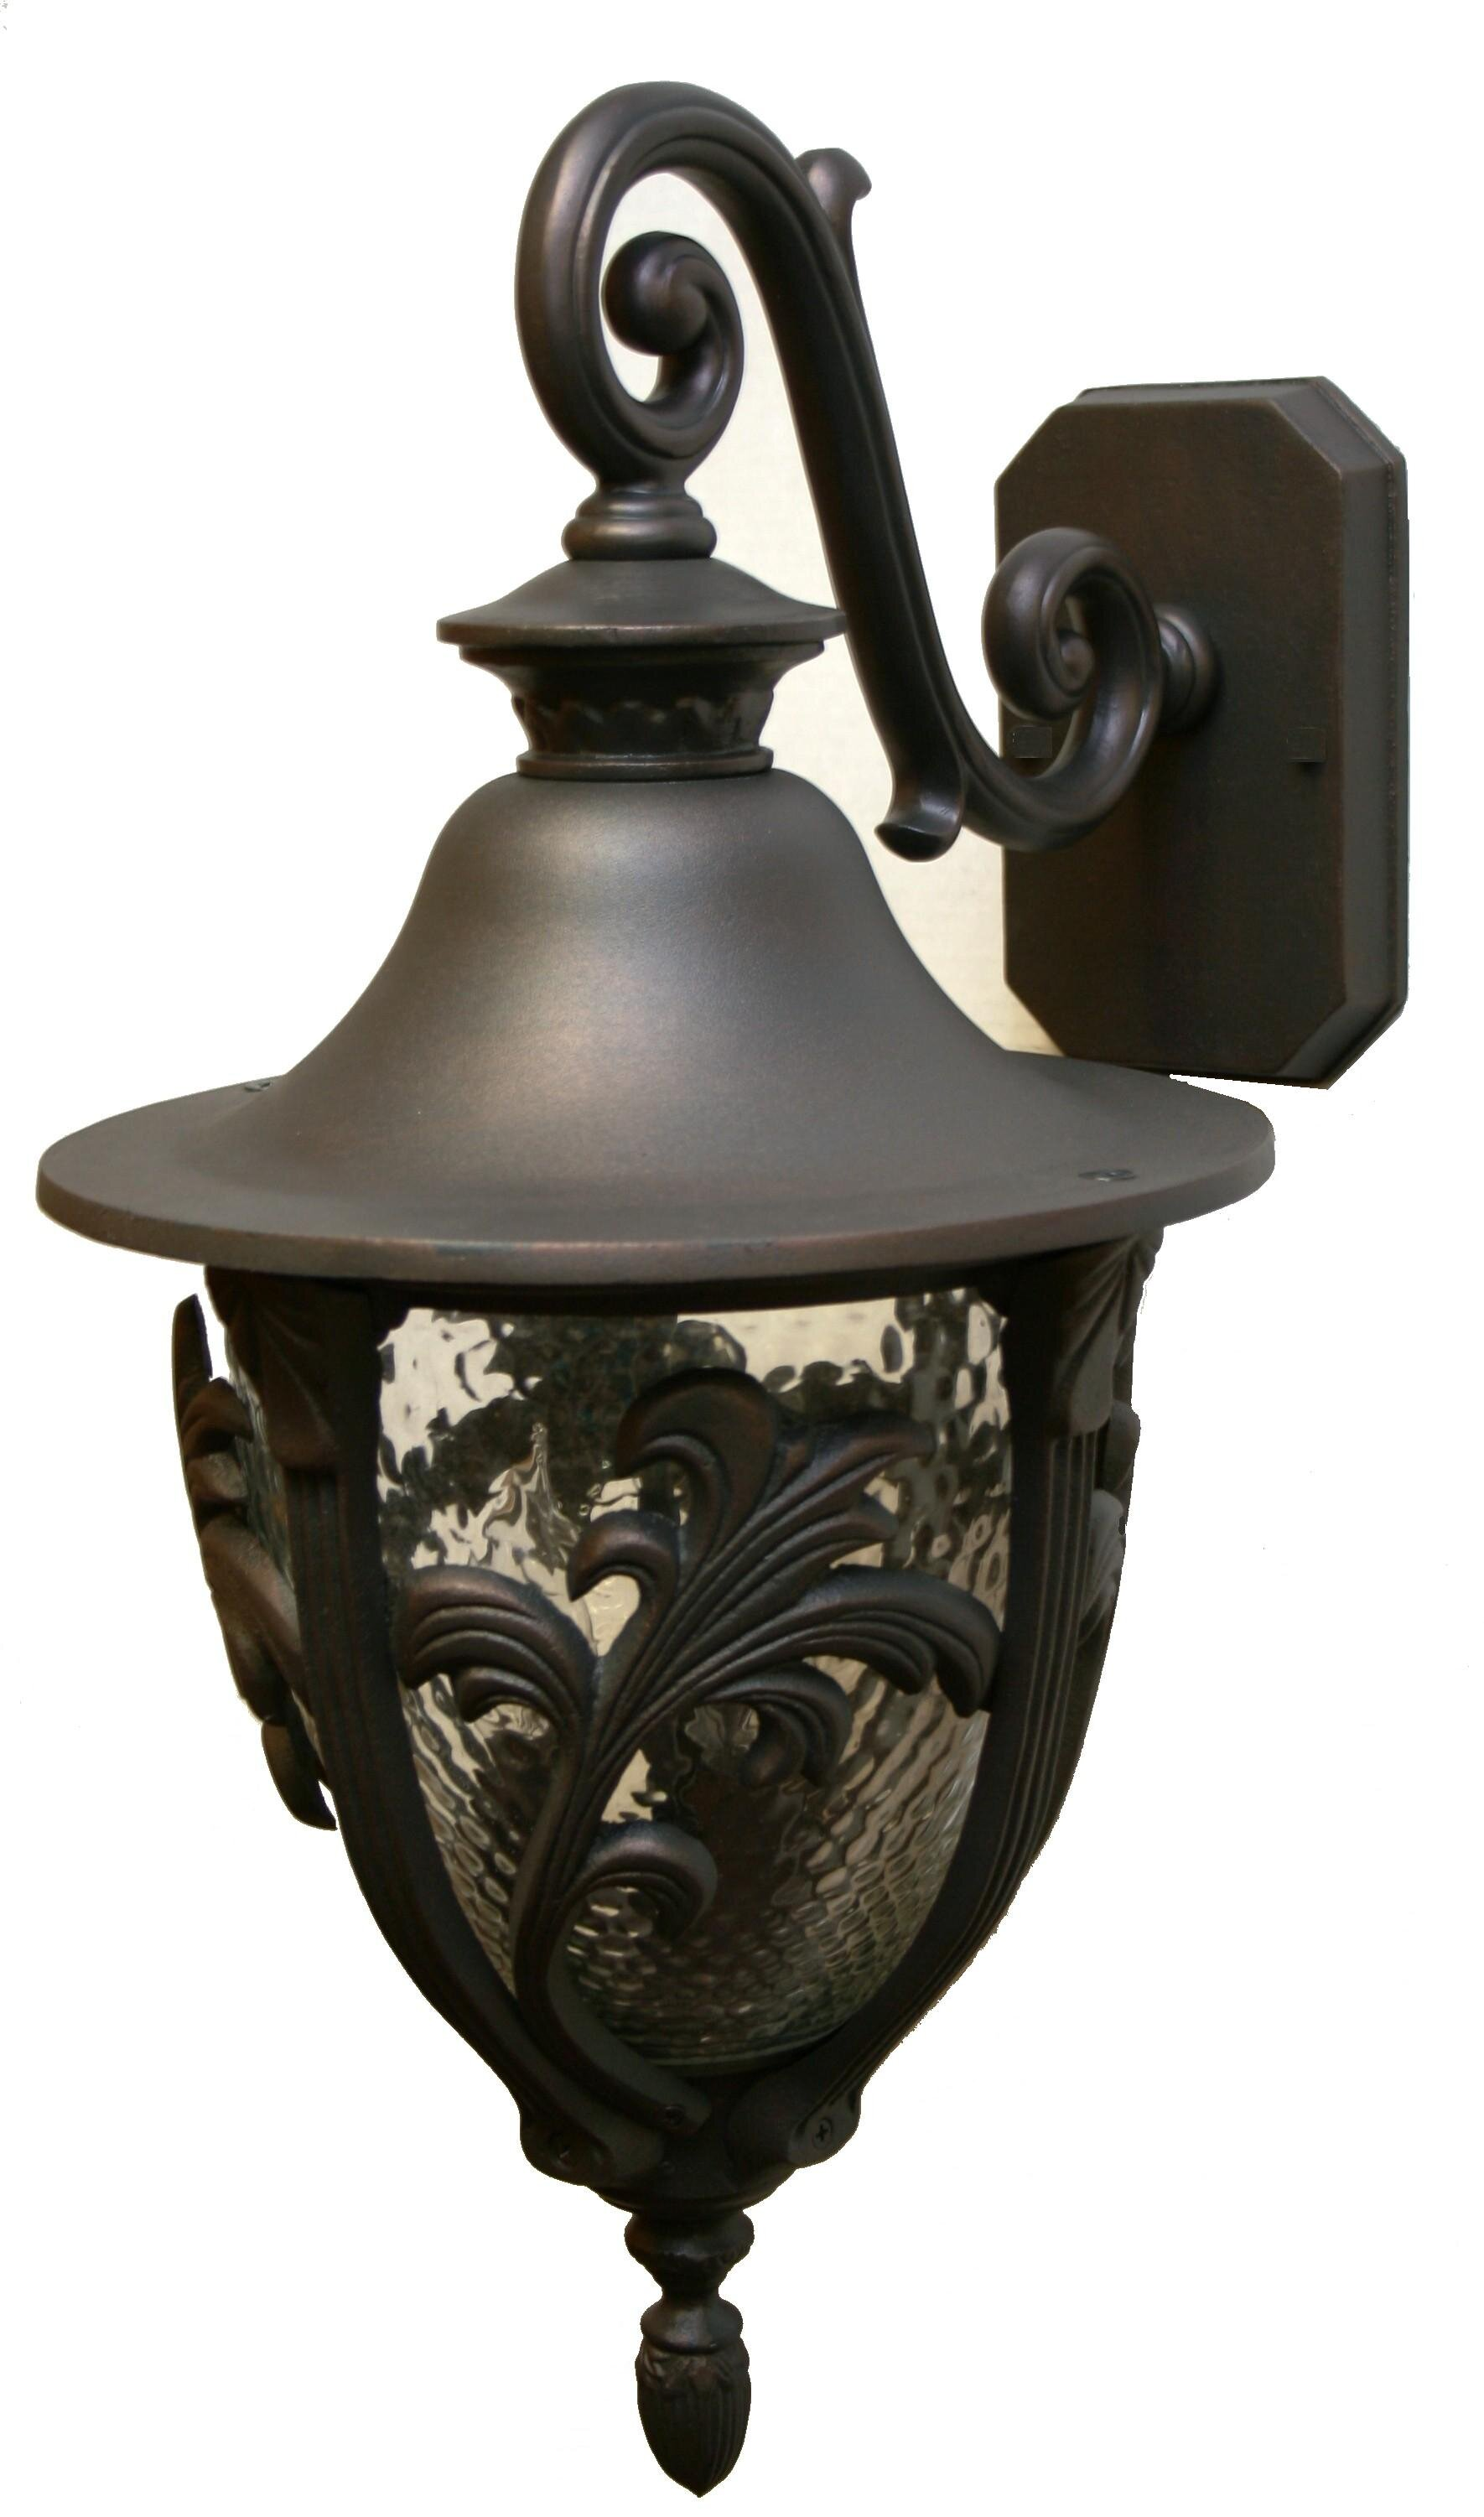 4 Light Pewter Silver Outdoor Wall Lighting You Ll Love In 2021 Wayfair